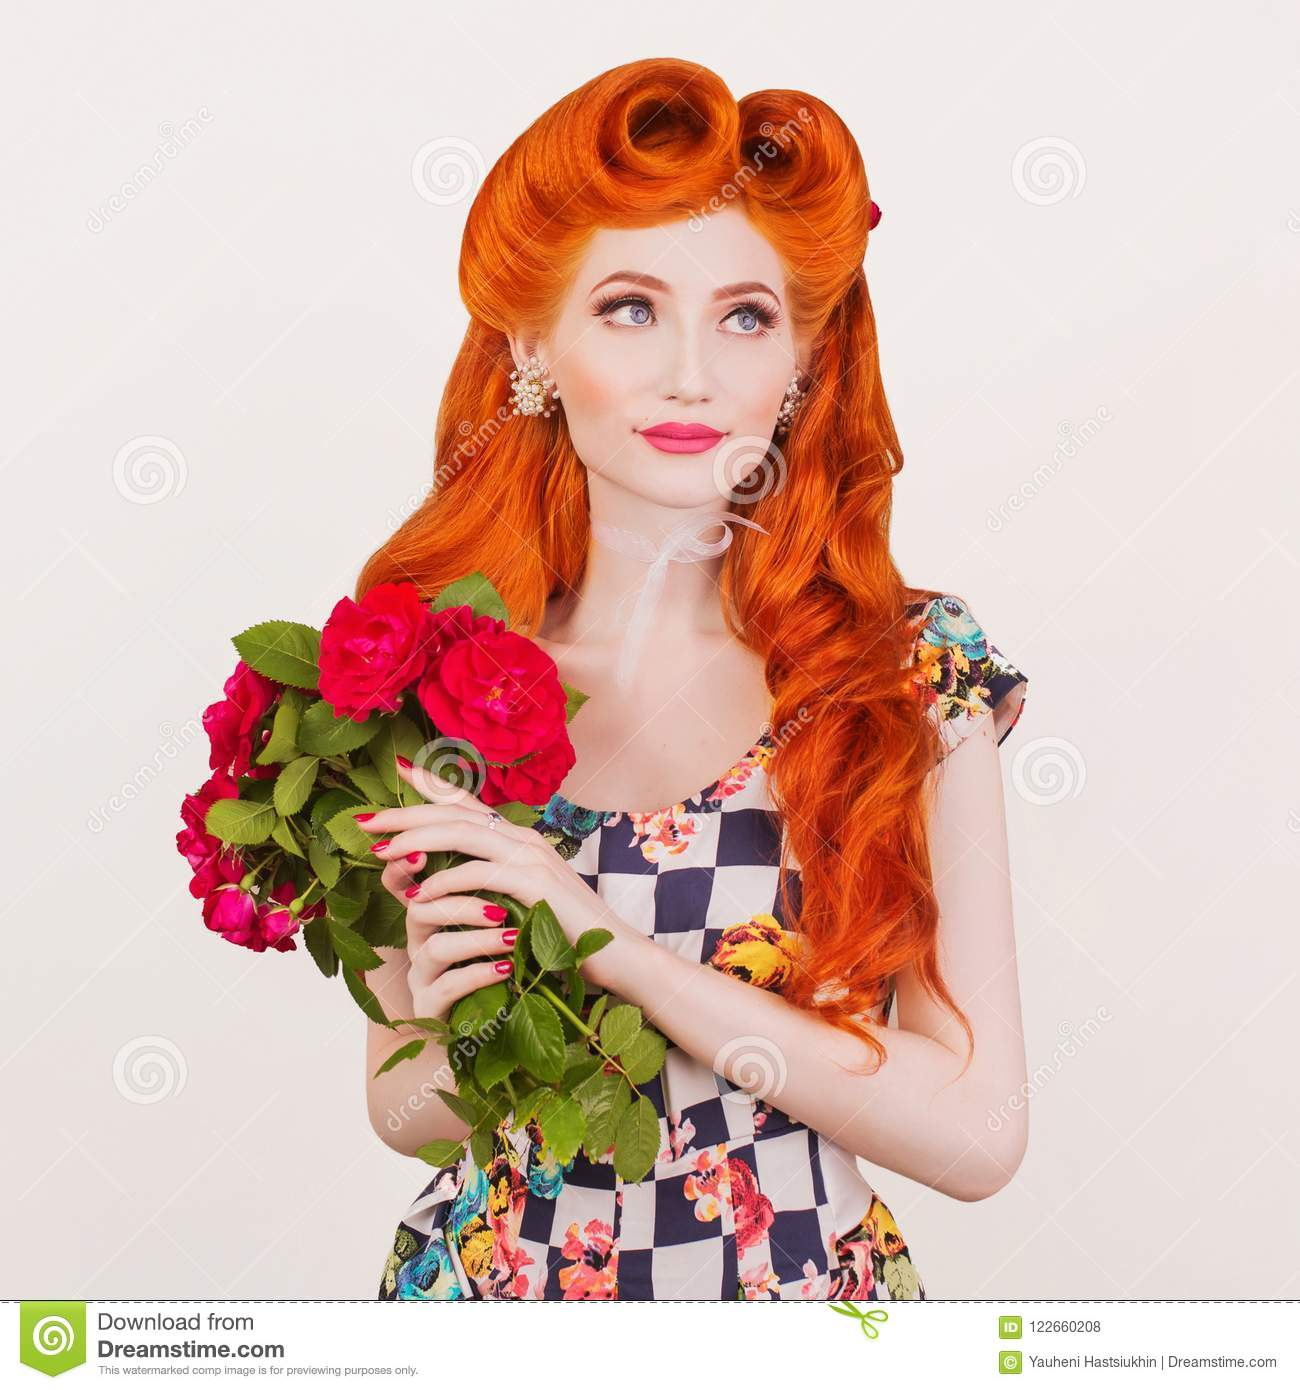 Fascinating smile on face. Valentines day concept. Beautiful stylish attire. Happy redhead model with hairstyle with bouquet